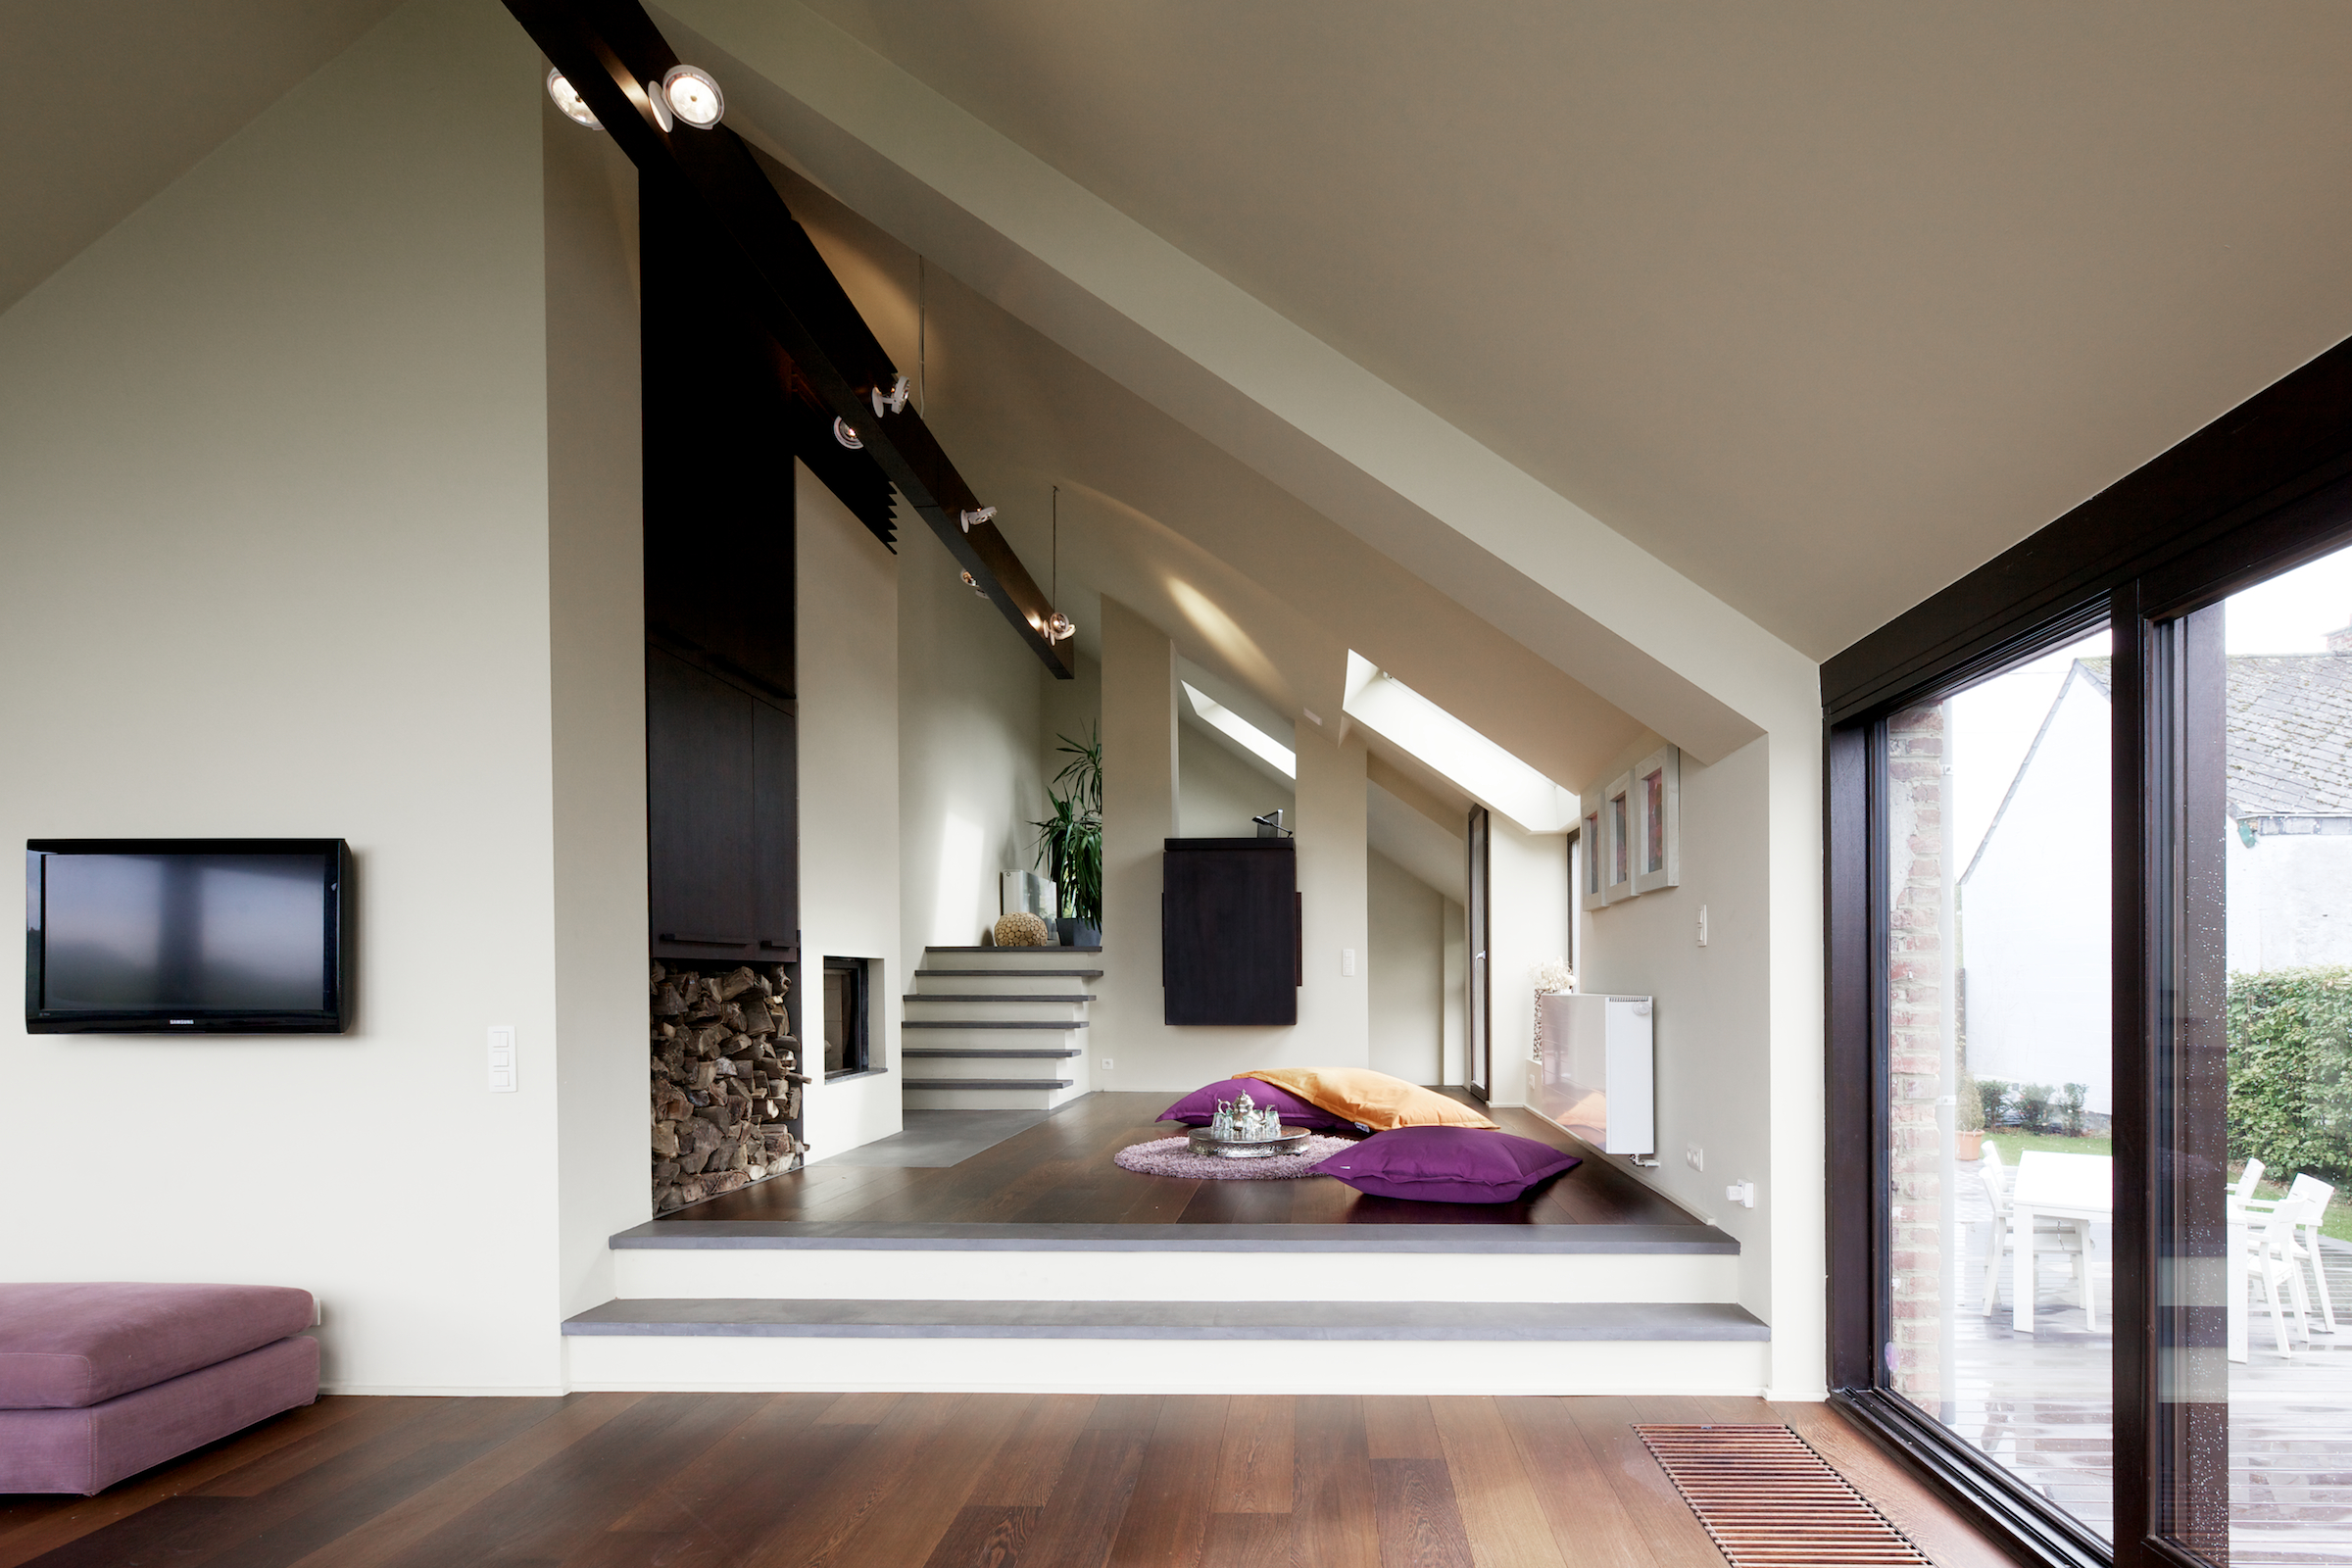 Christophe ternest architecte d 39 int rieur projets for Architectes d interieur